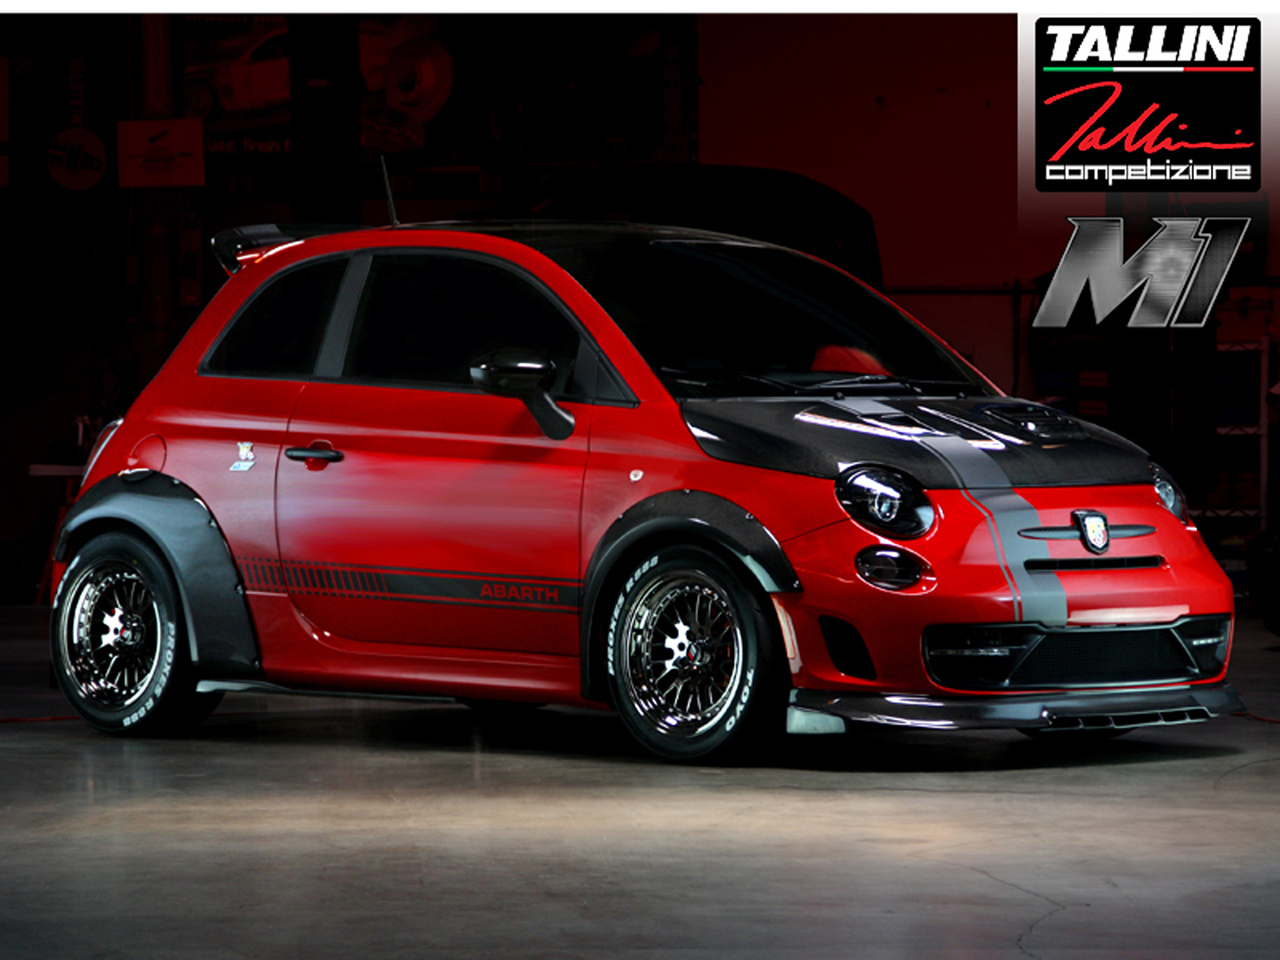 Abarth 500 By Road Race Motorsports Is On Our Christmas Wish List Photo Gallery 84859 on how to build an electric car guide